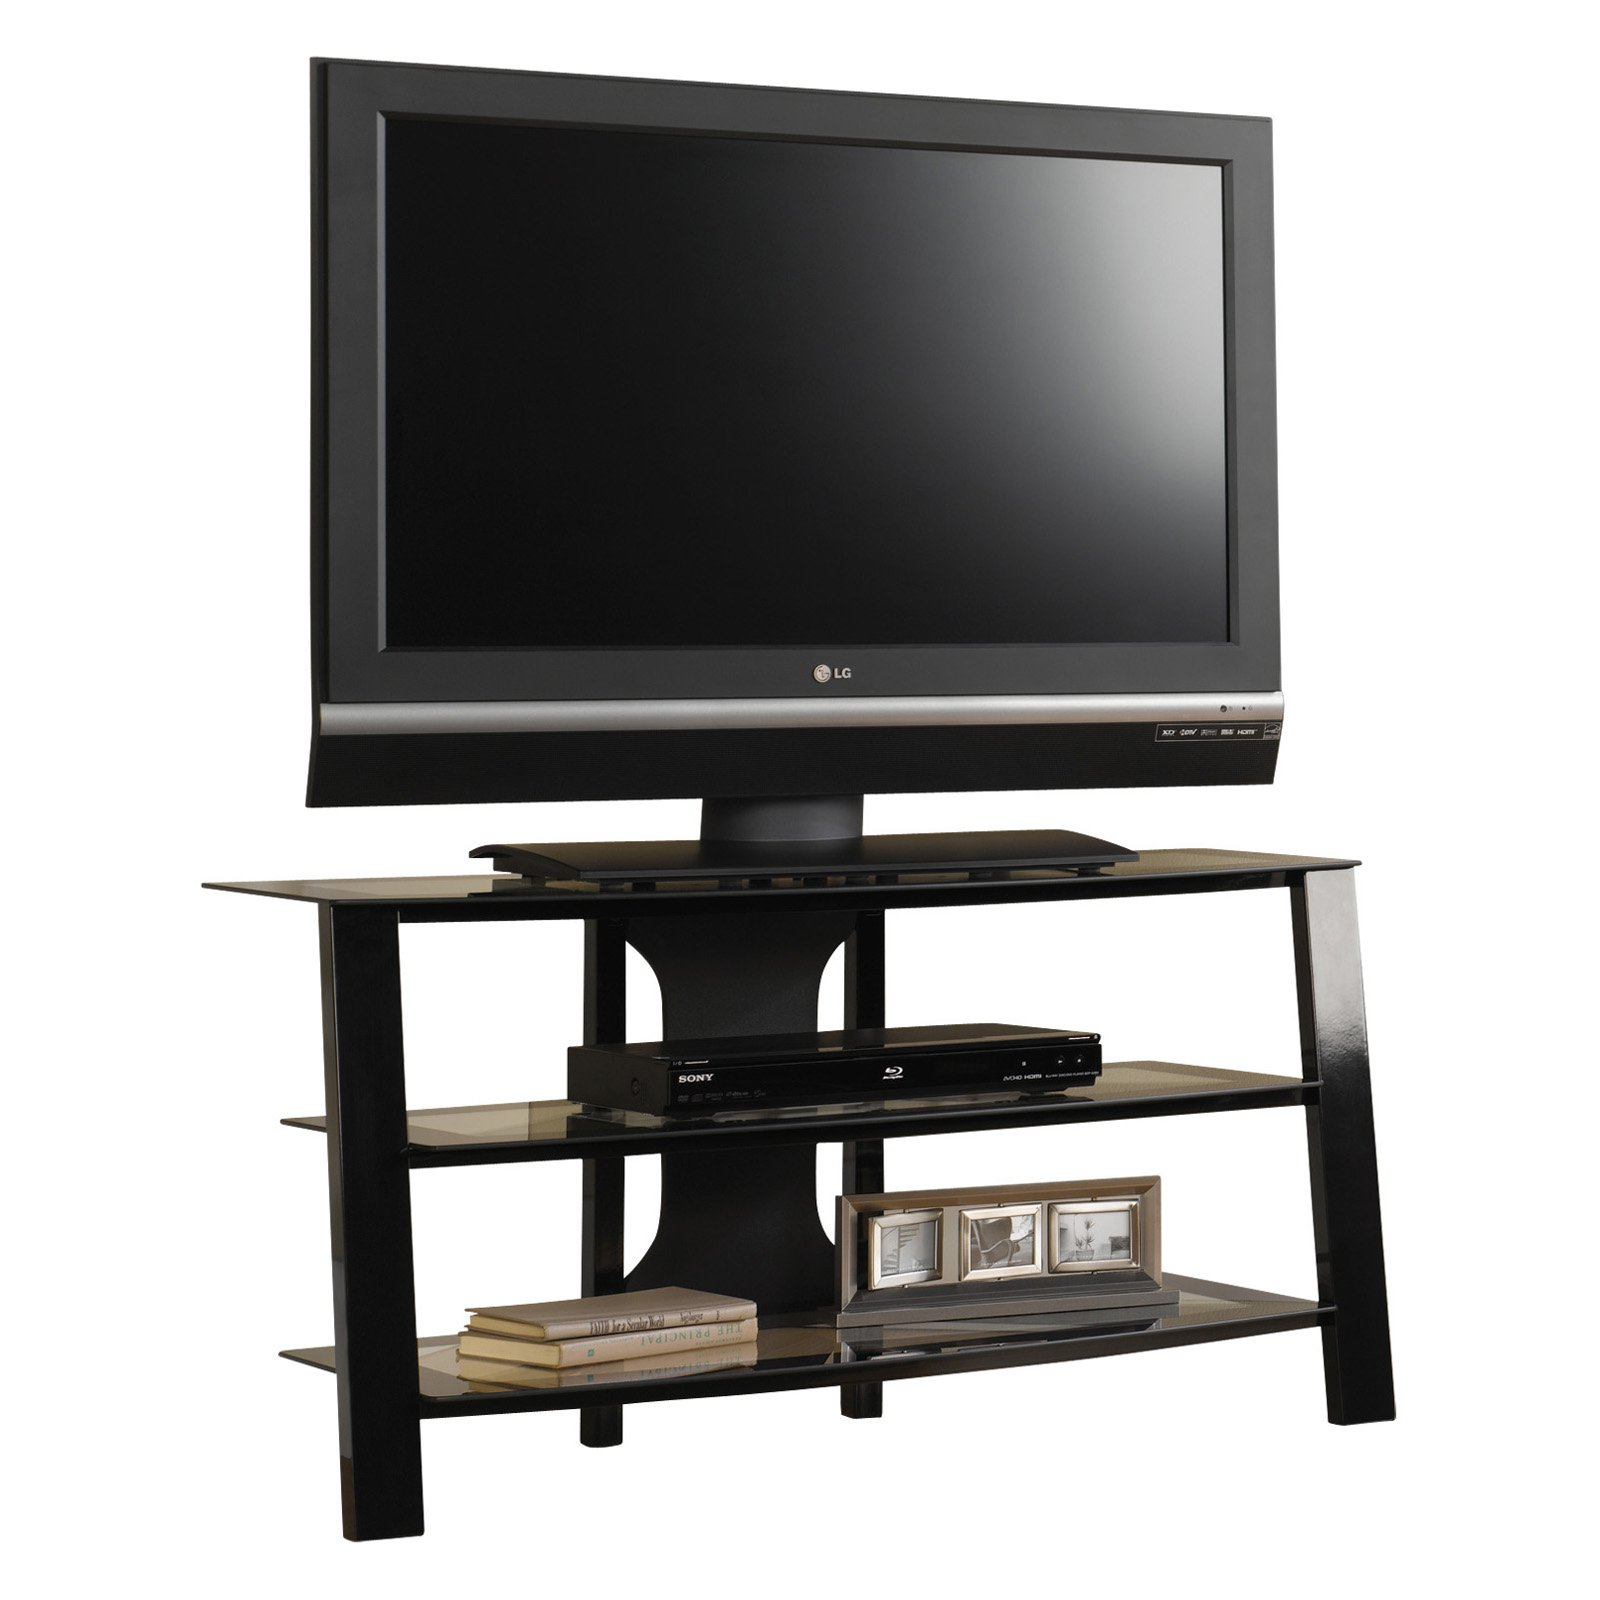 Sauder Mirage Panel Black/Clear TV Stand for TV's up to 42""